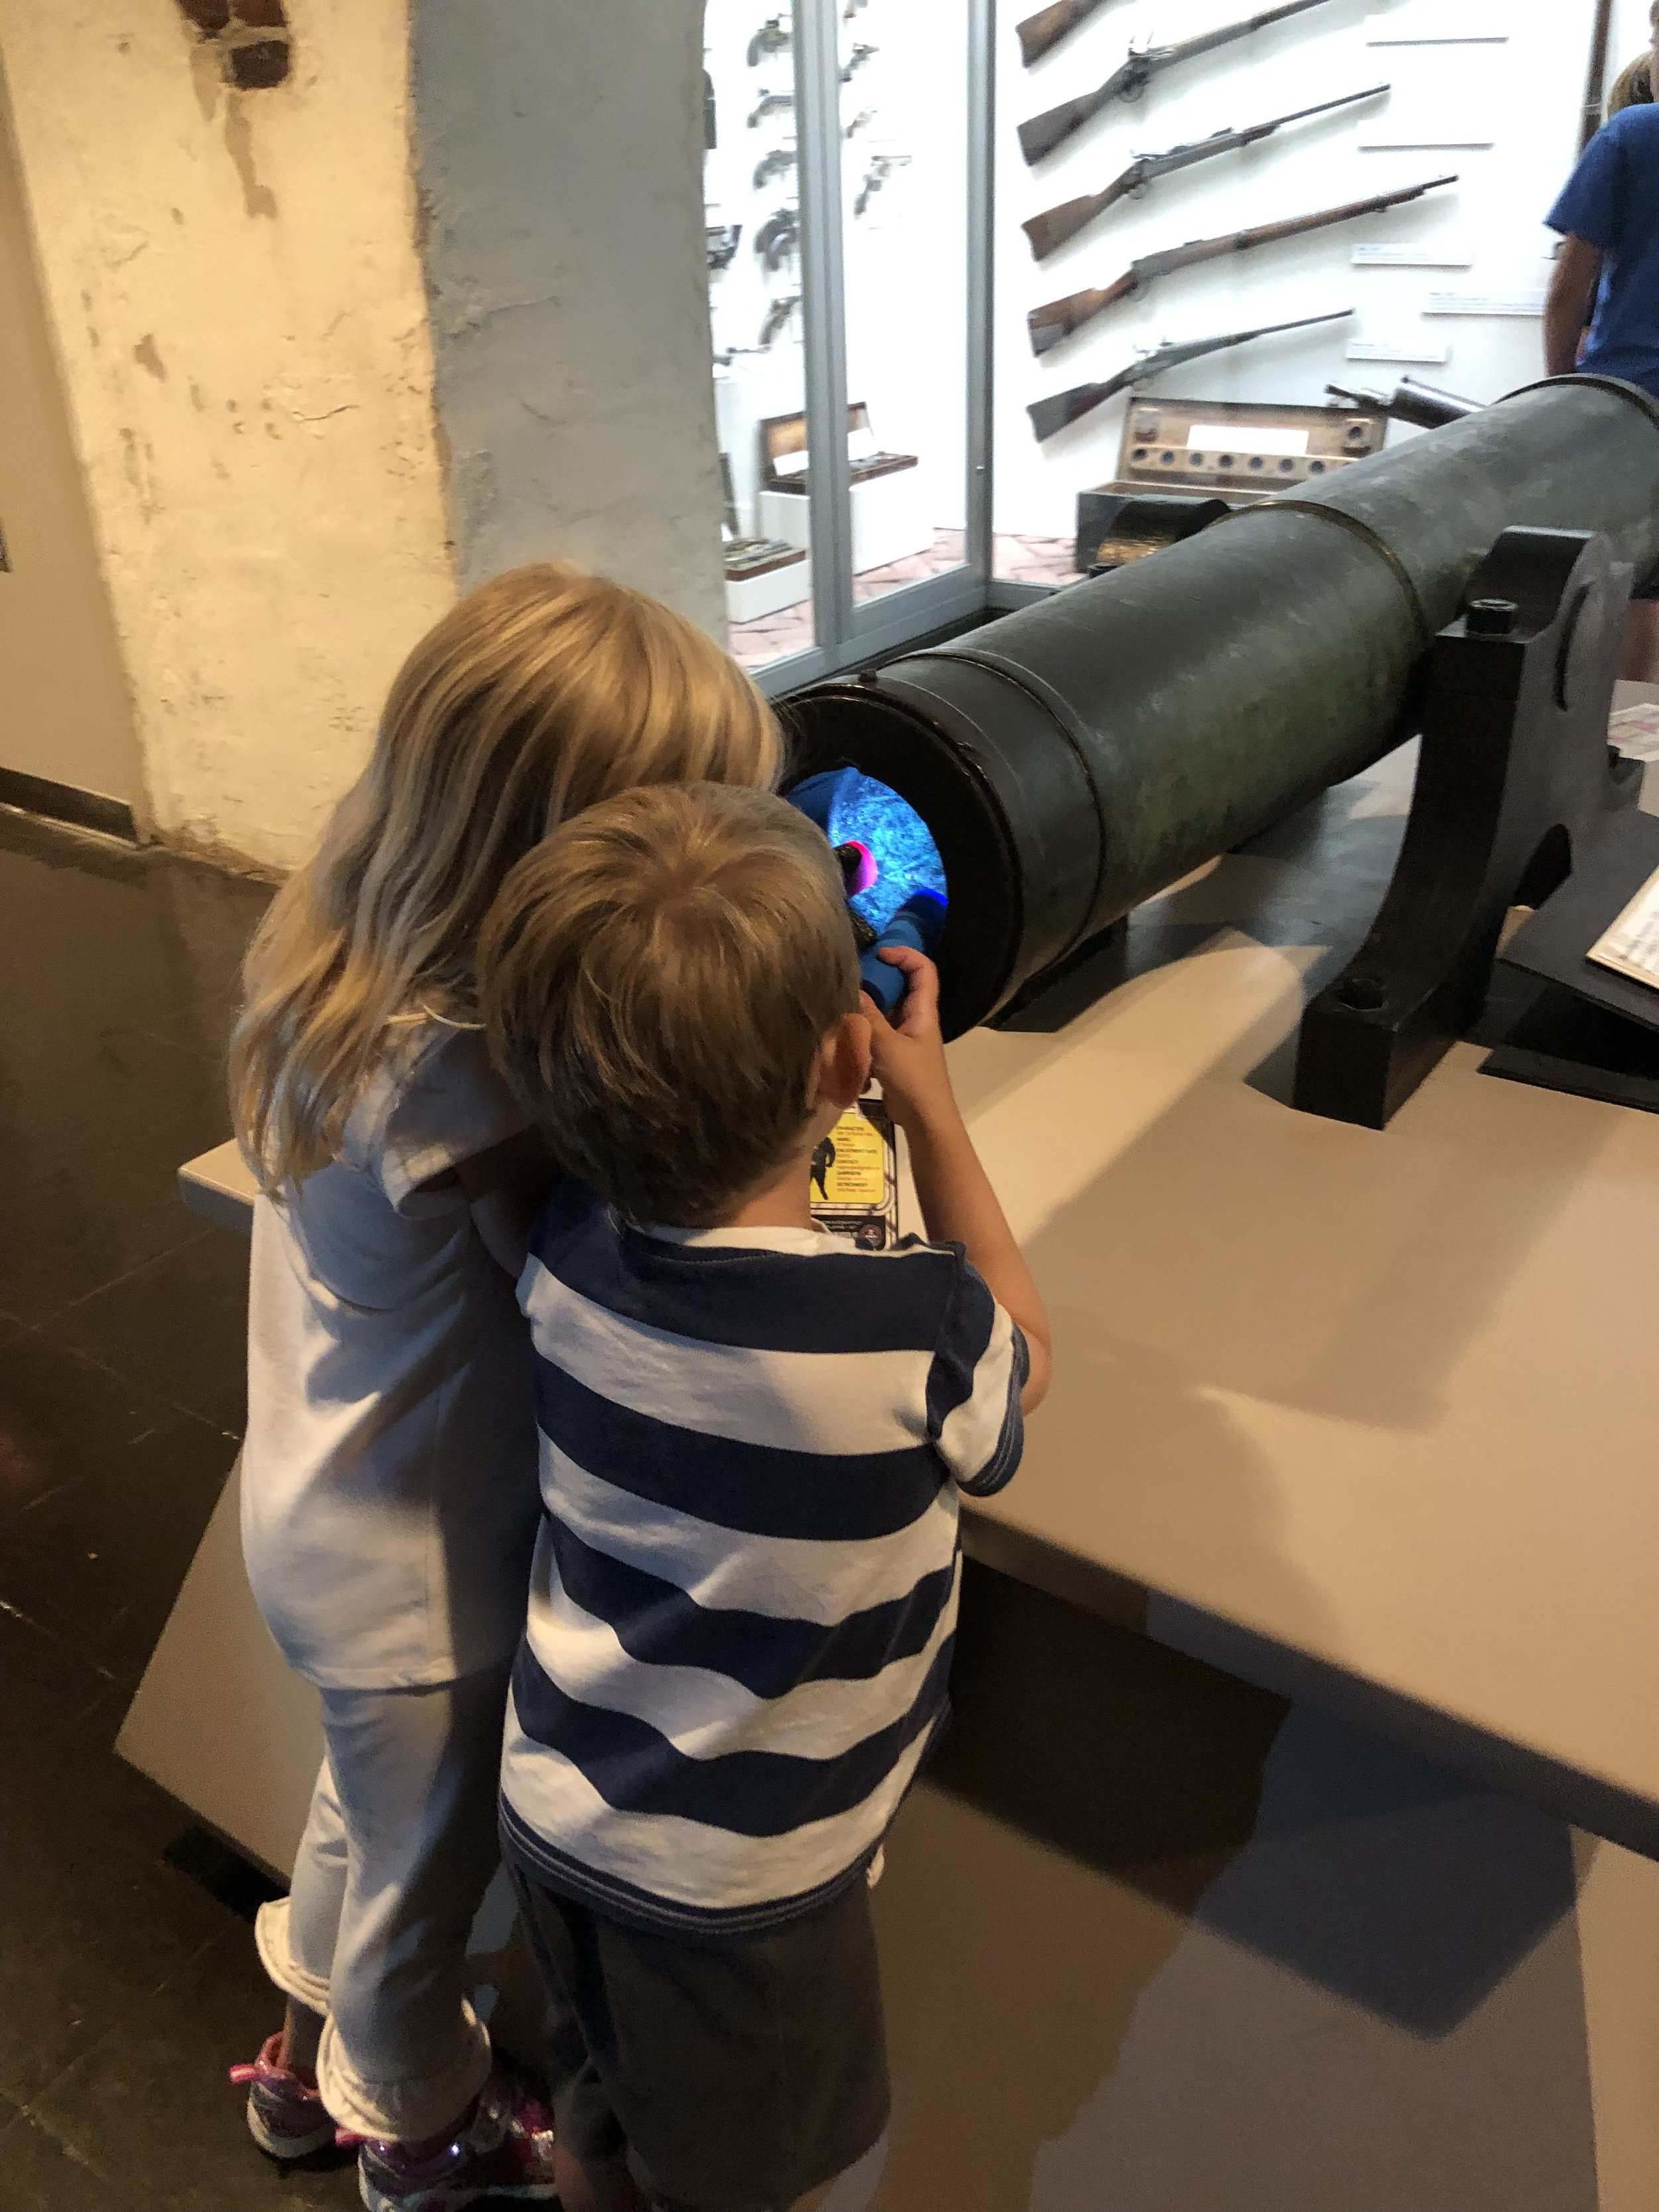 Checking out the cannon with our flashlights!